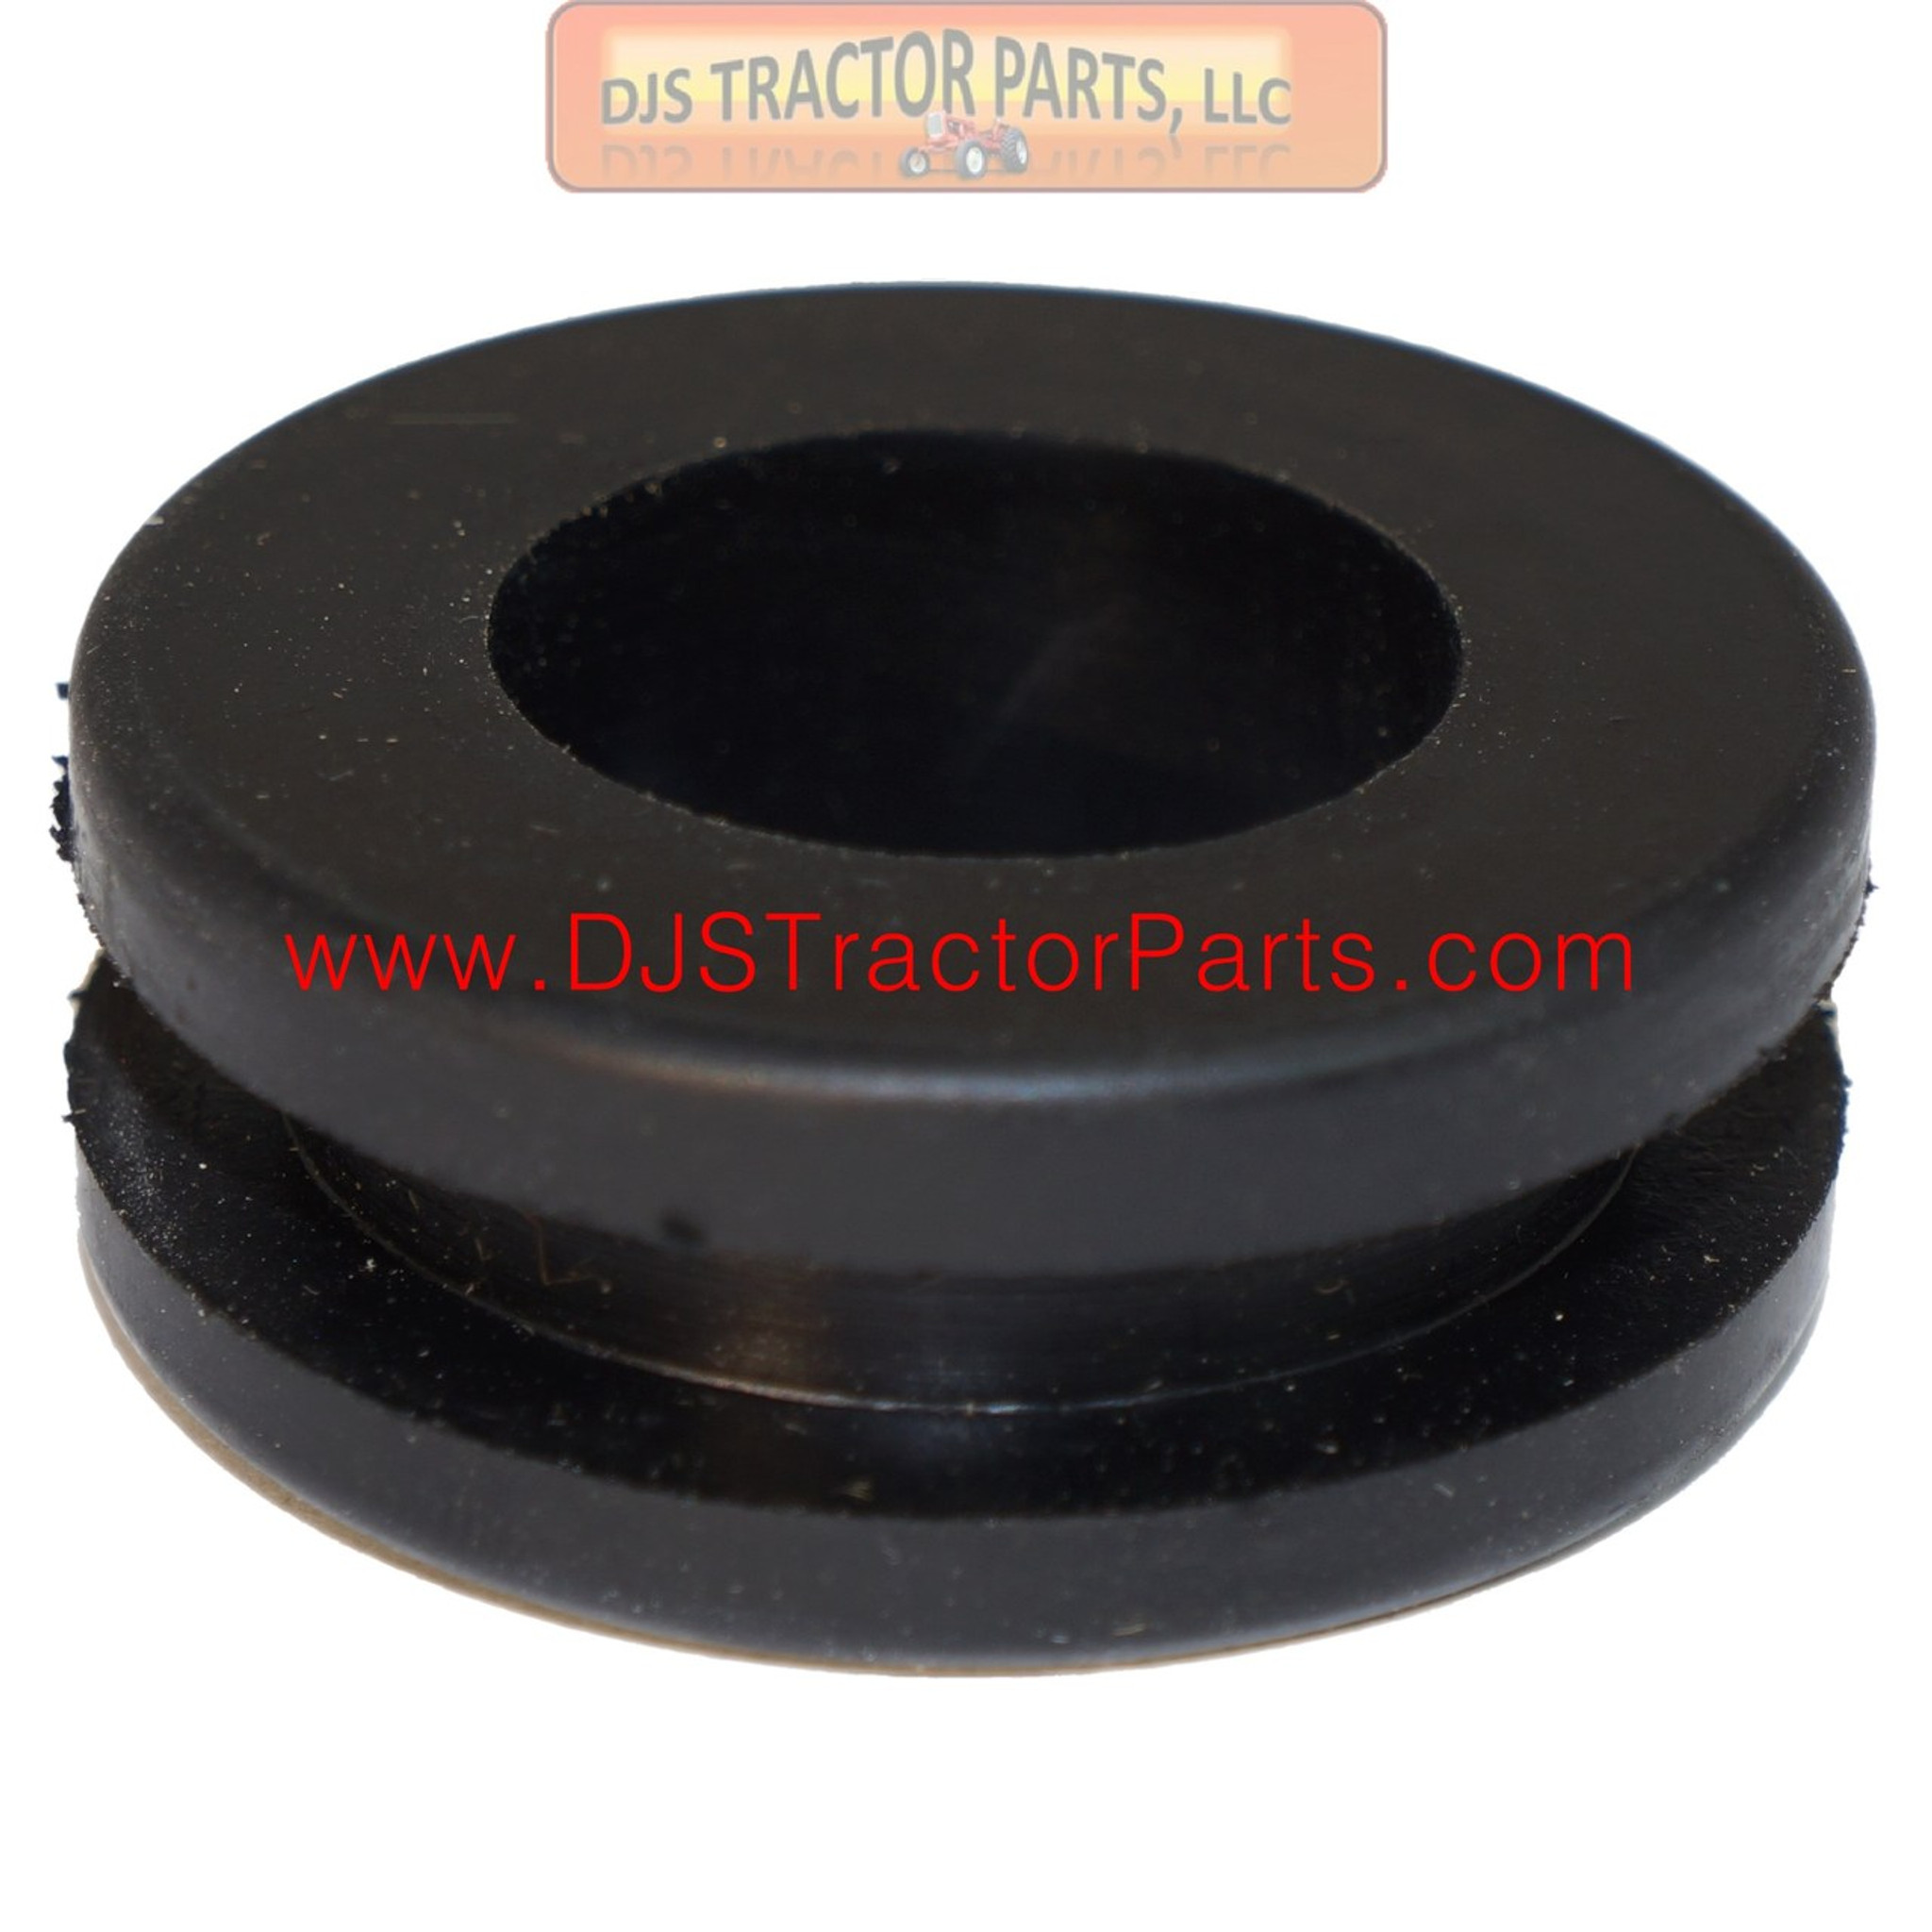 wiring harness grommet for dash fuel tank support ab 1897d djs rh stores djstractorparts com Wire Grommets Rubber Harness Aplications 240z wiring harness grommet